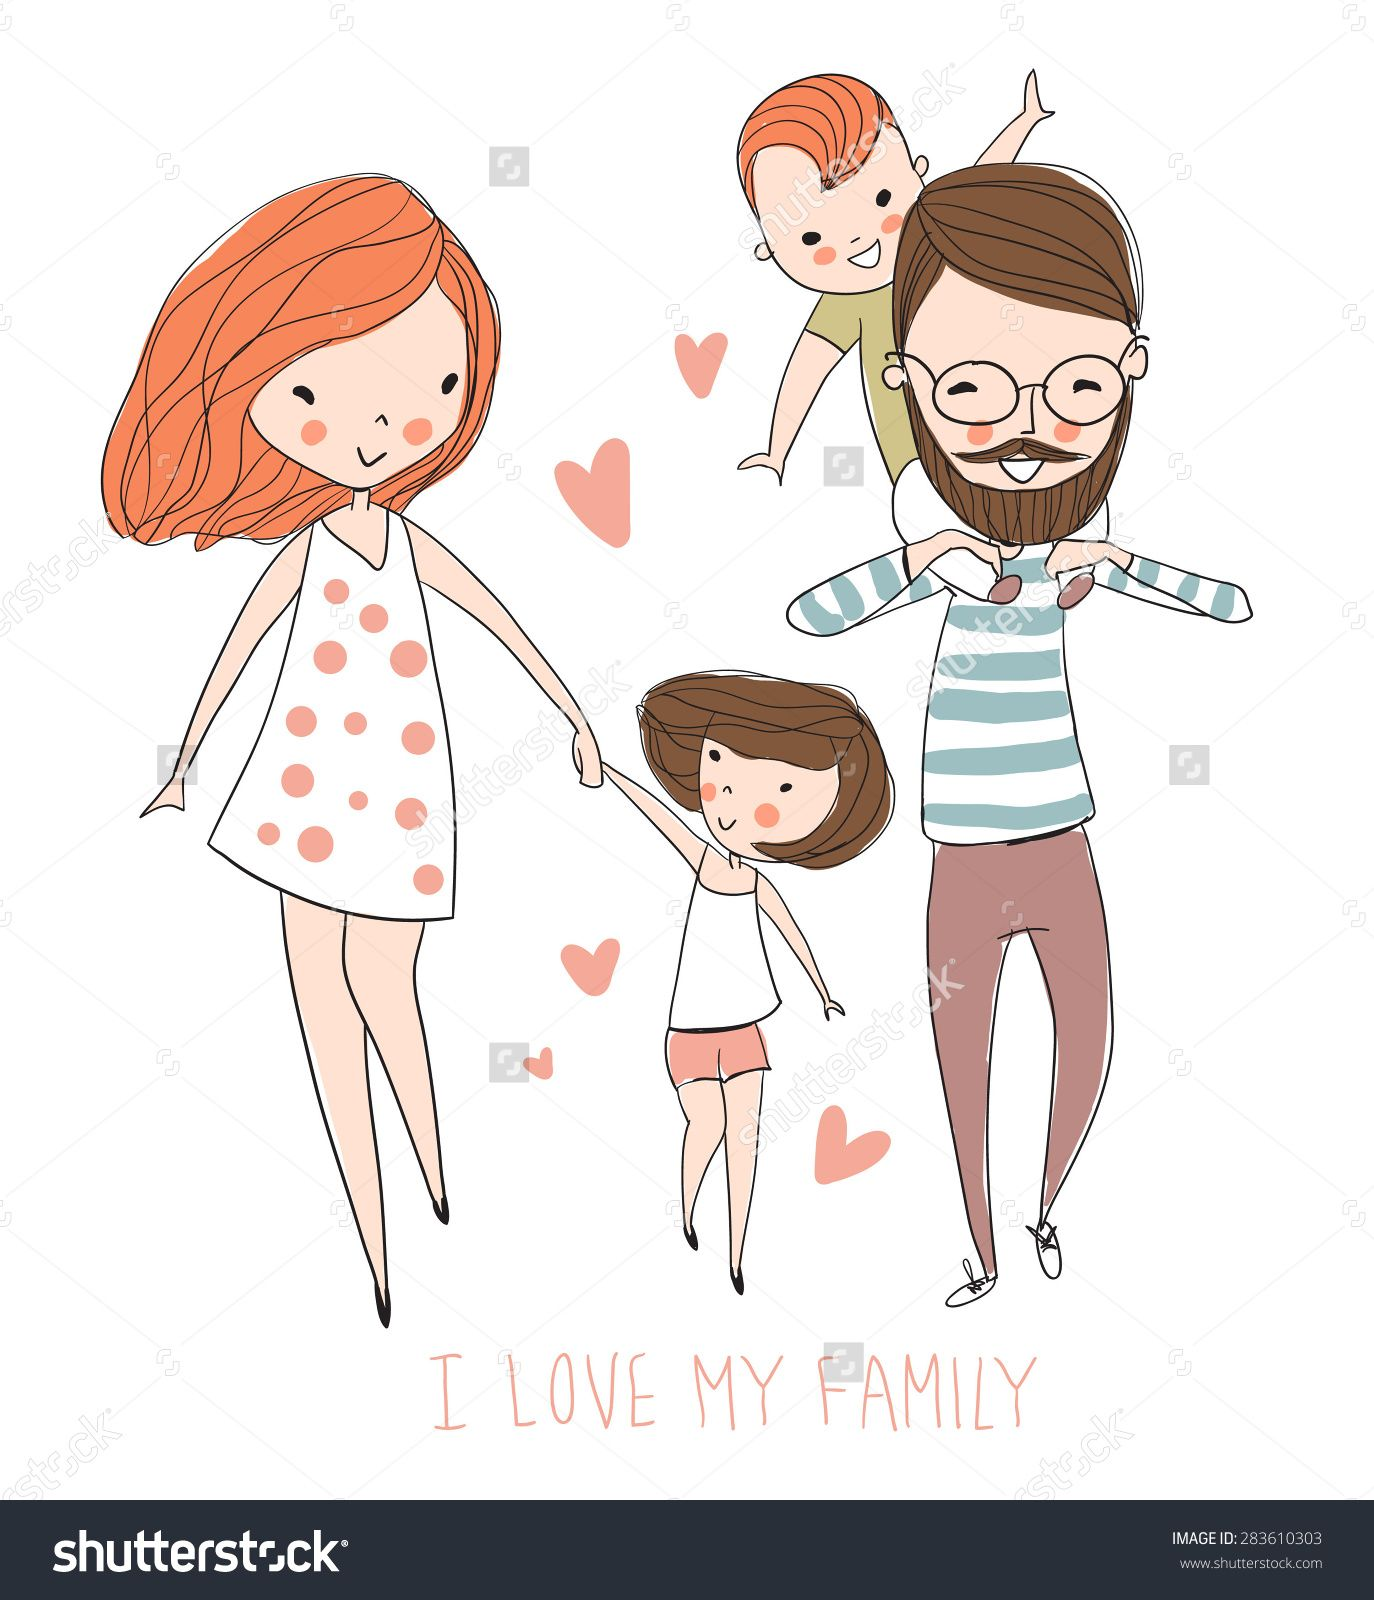 I Love My Family Cute Vector Illustration With Mother Father